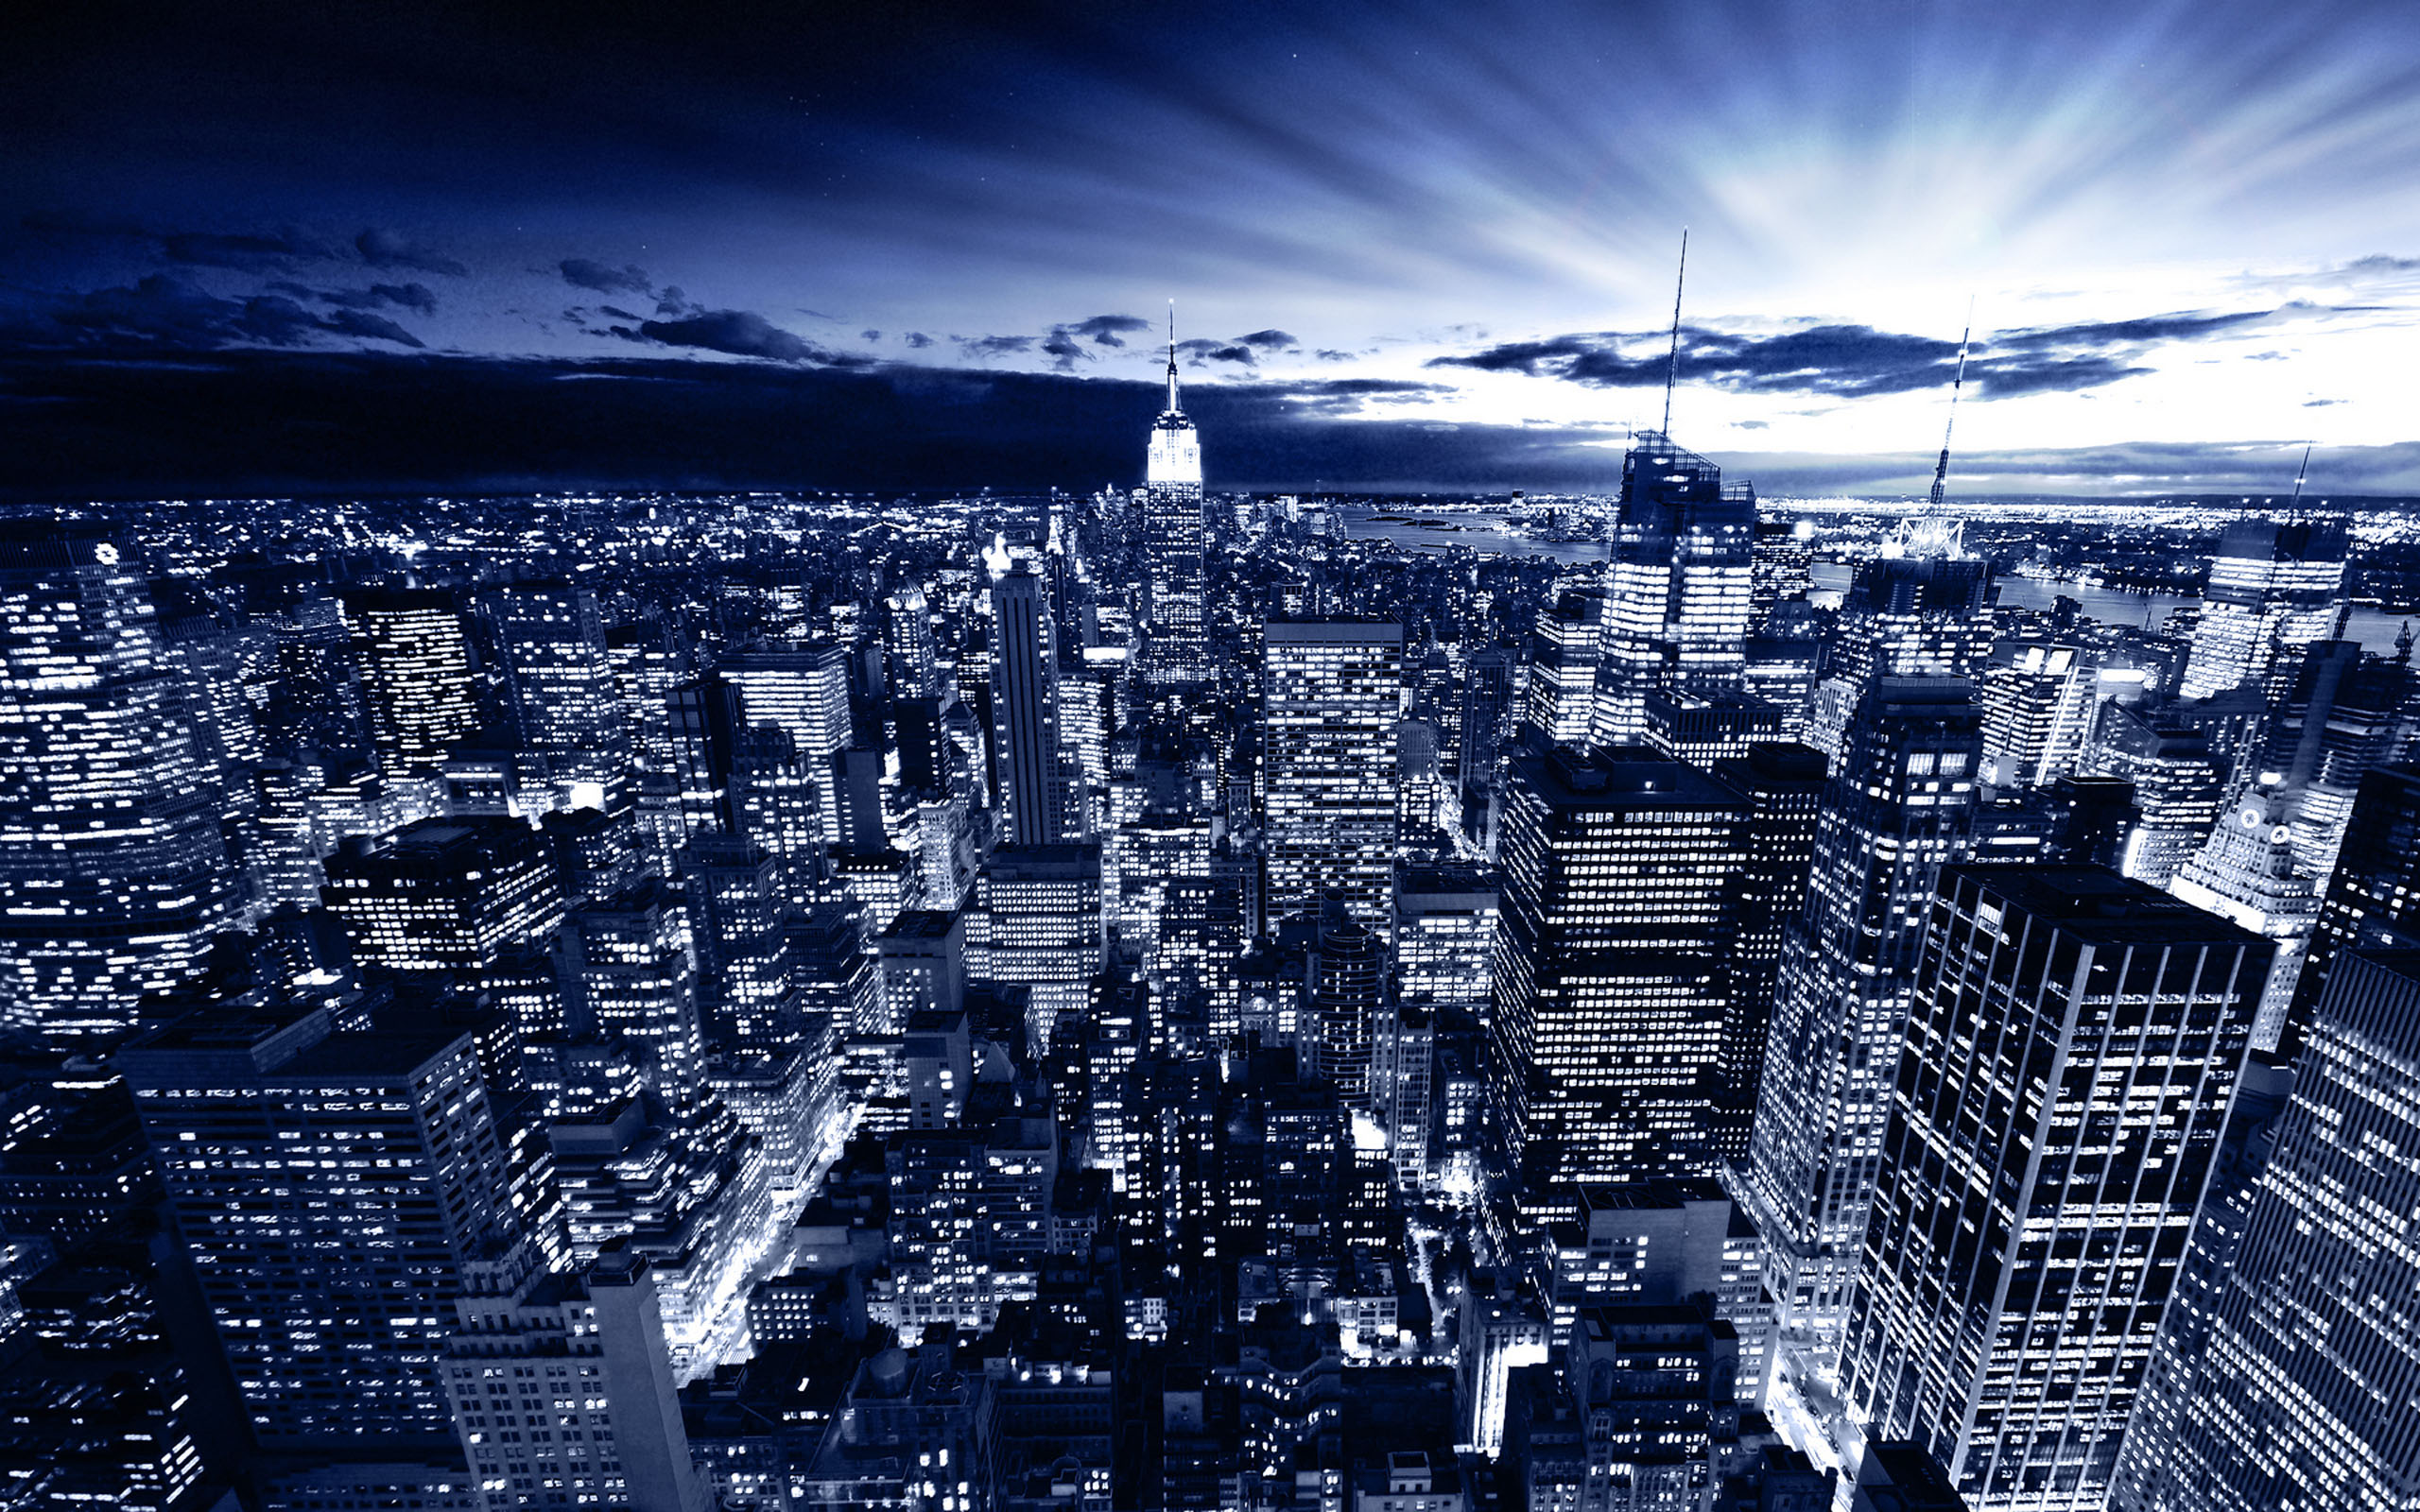 new-york-city-2560x1600-wallpaper | wallpaper.wiki